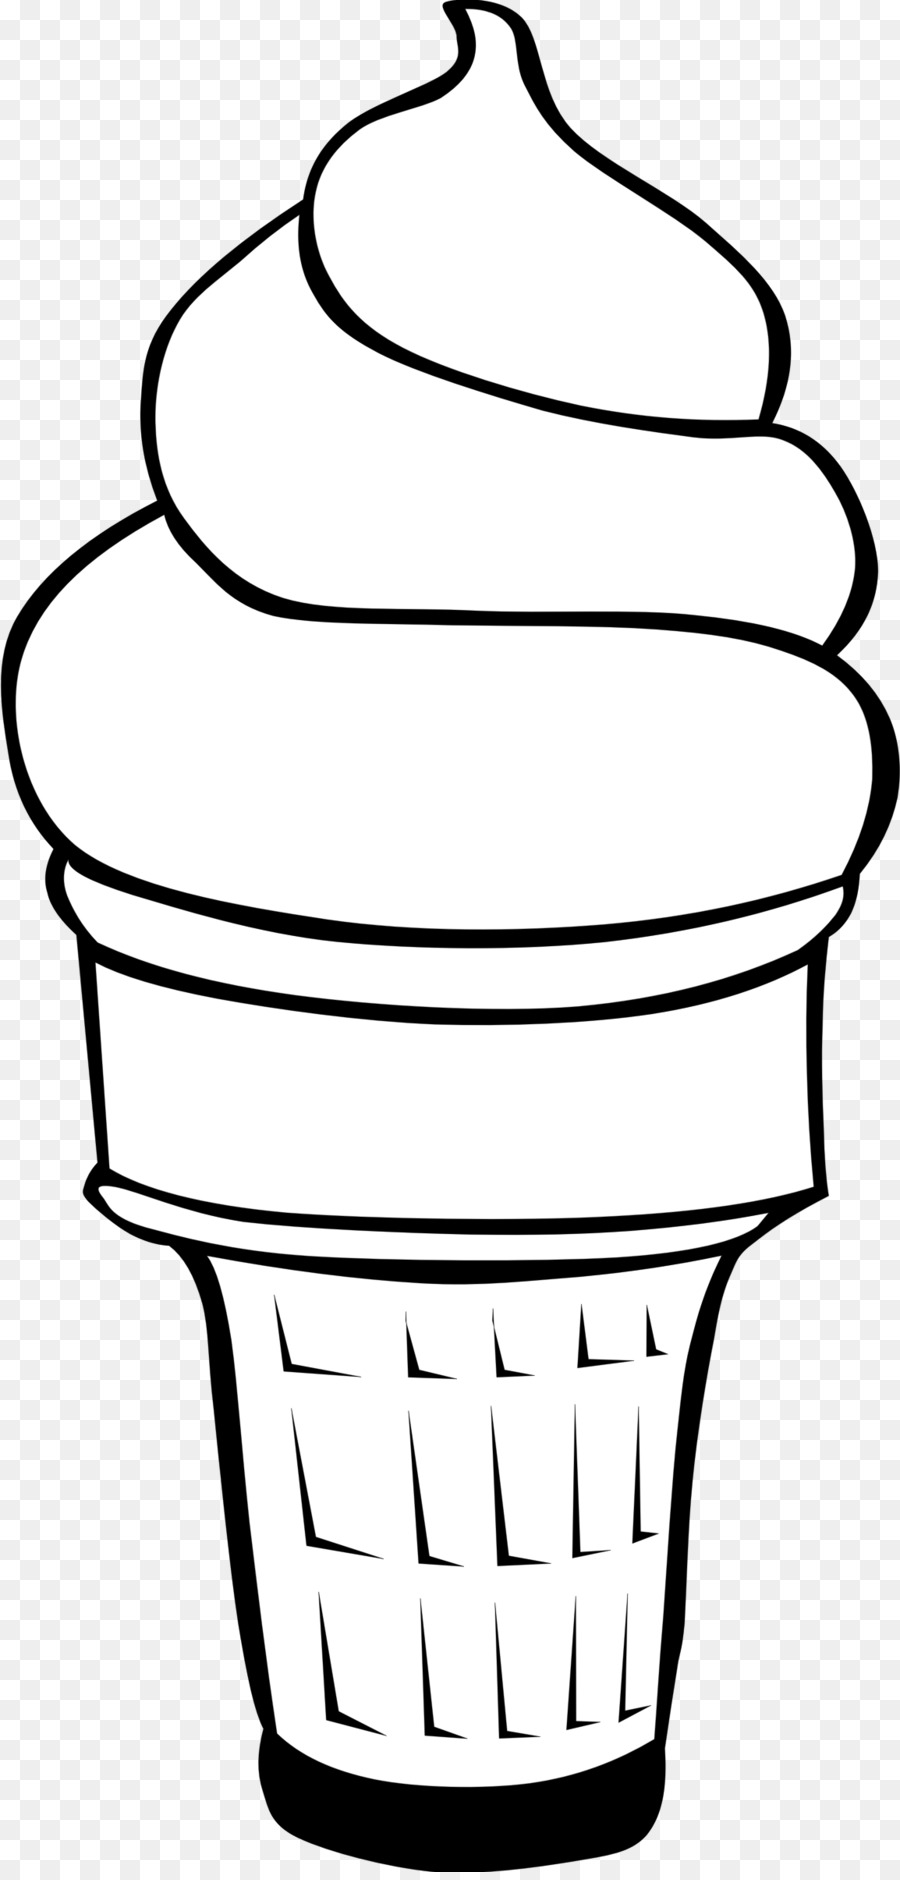 900x1880 Drawing, White, Food, Transparent Png Image Clipart Free Download